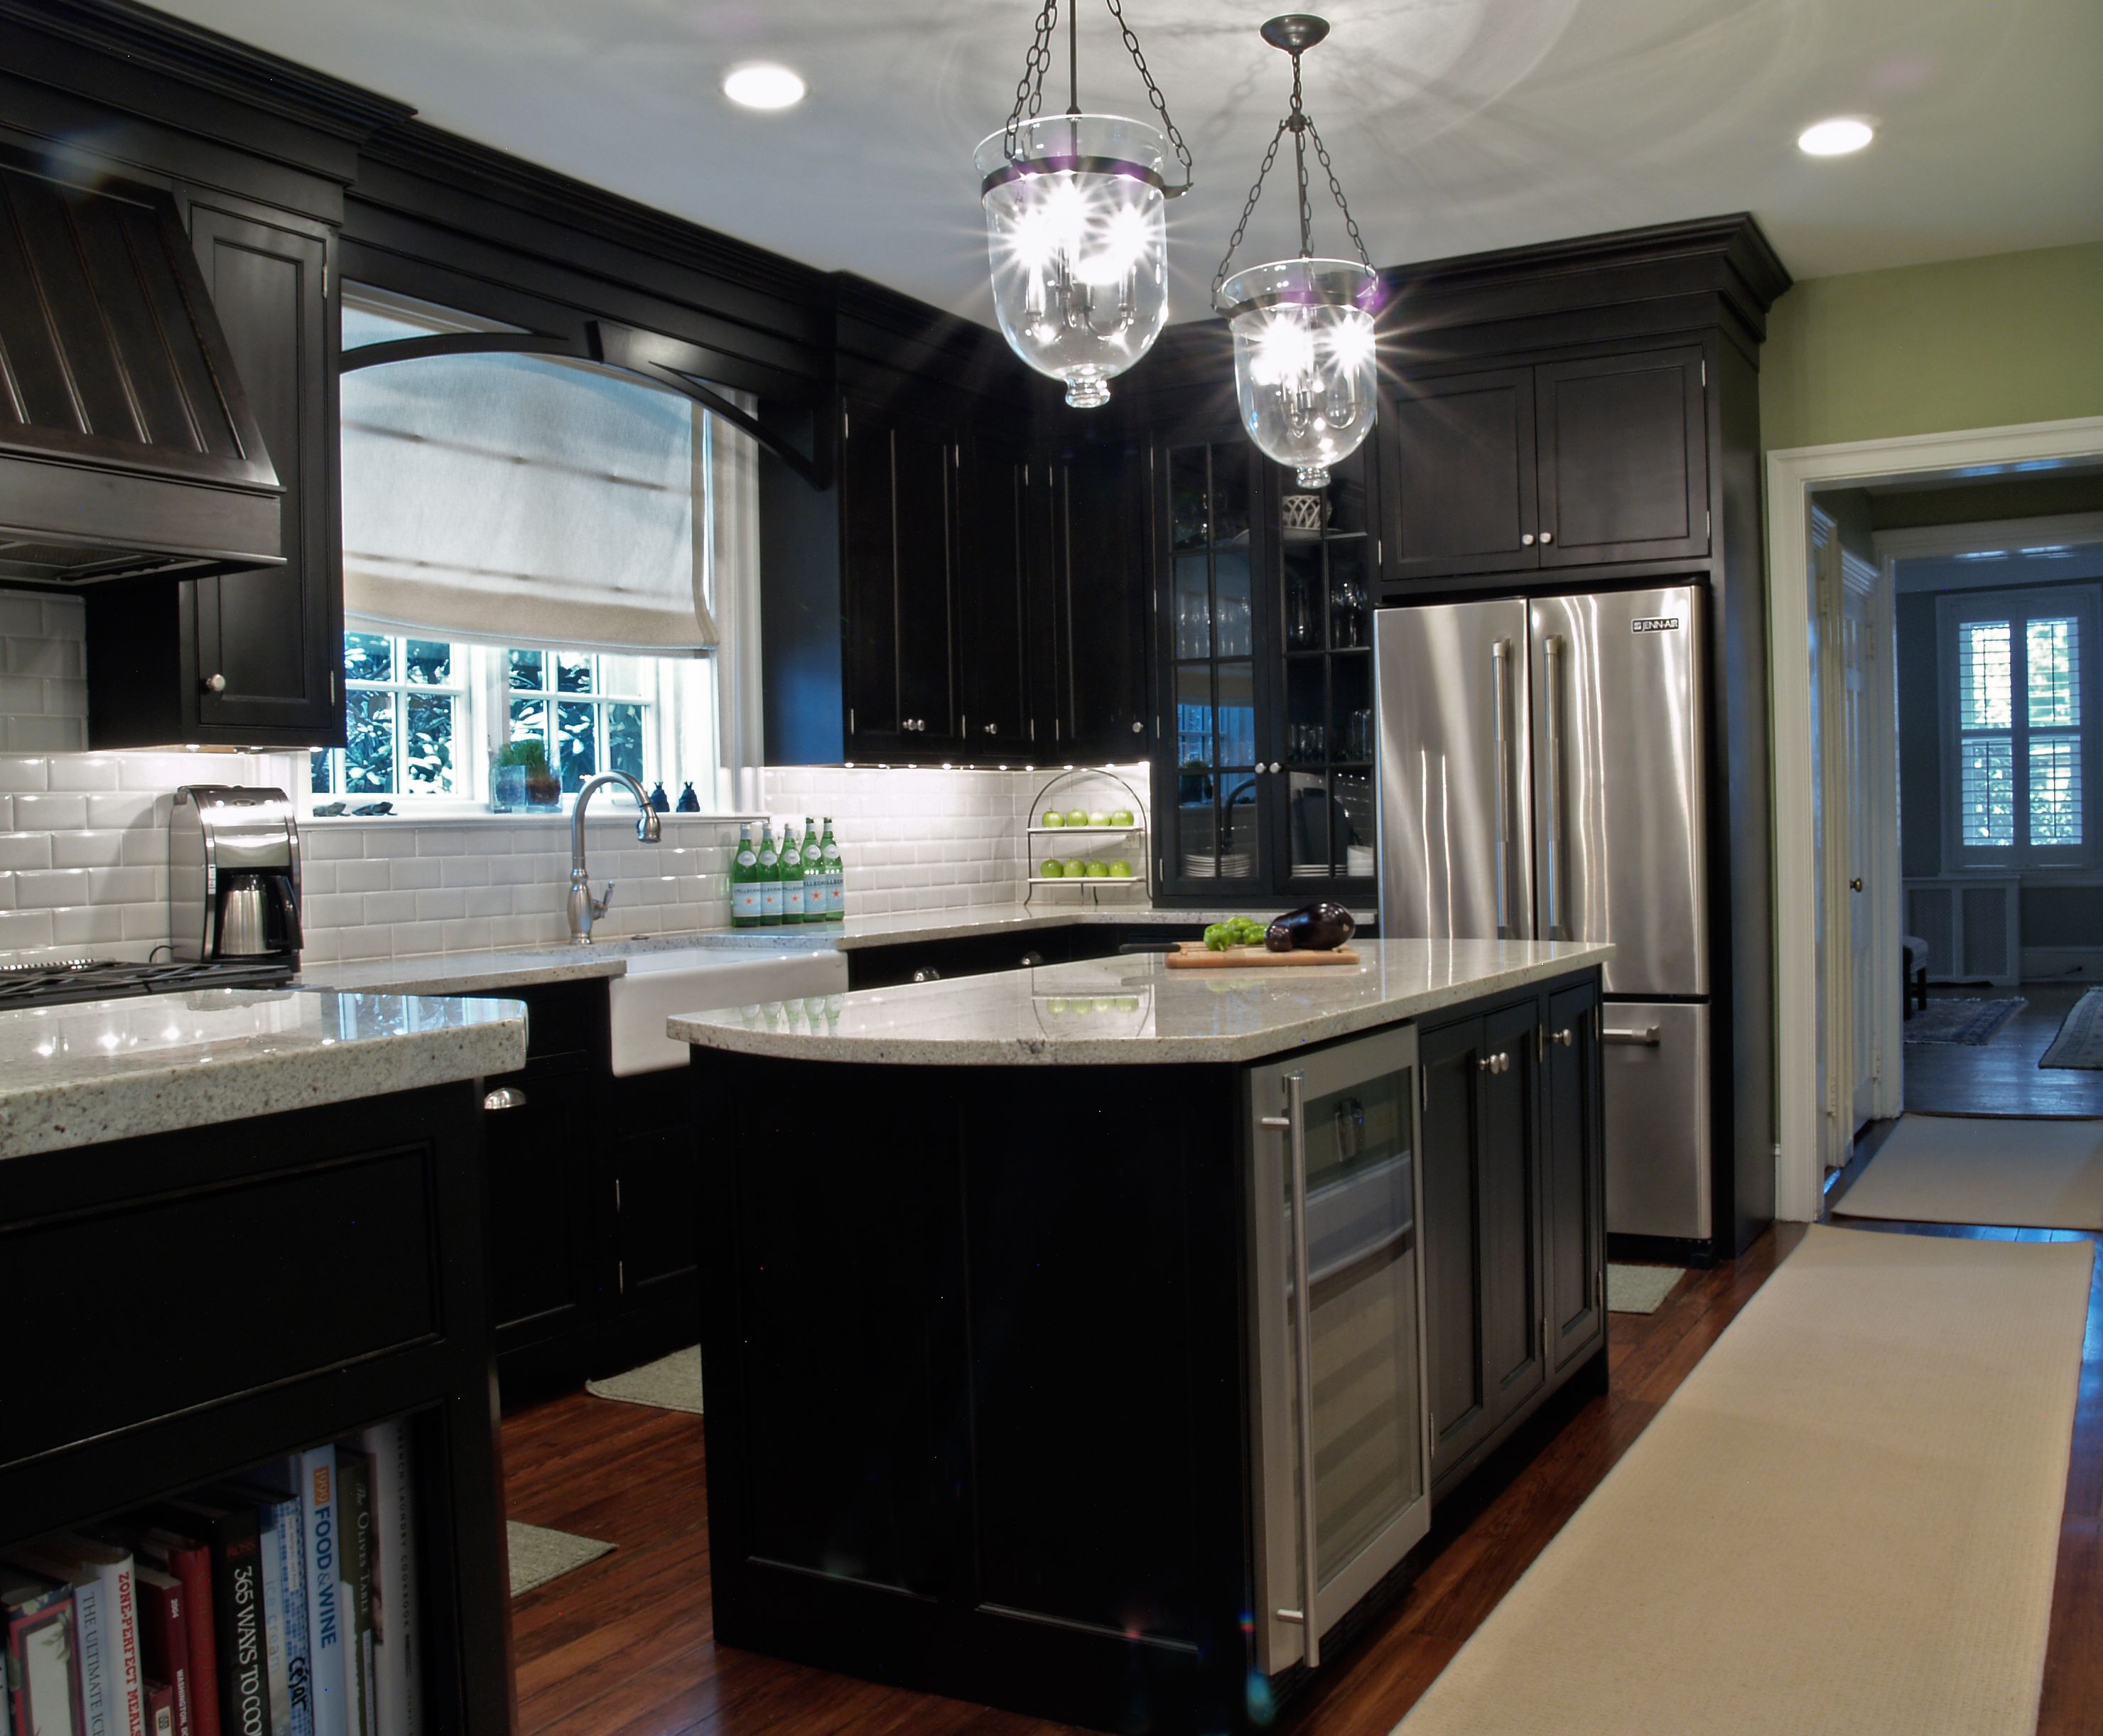 How To Paint Kitchen Cabinets In Mobile Home Pin By Artith Parton On Stuff I Want To Make Pinterest